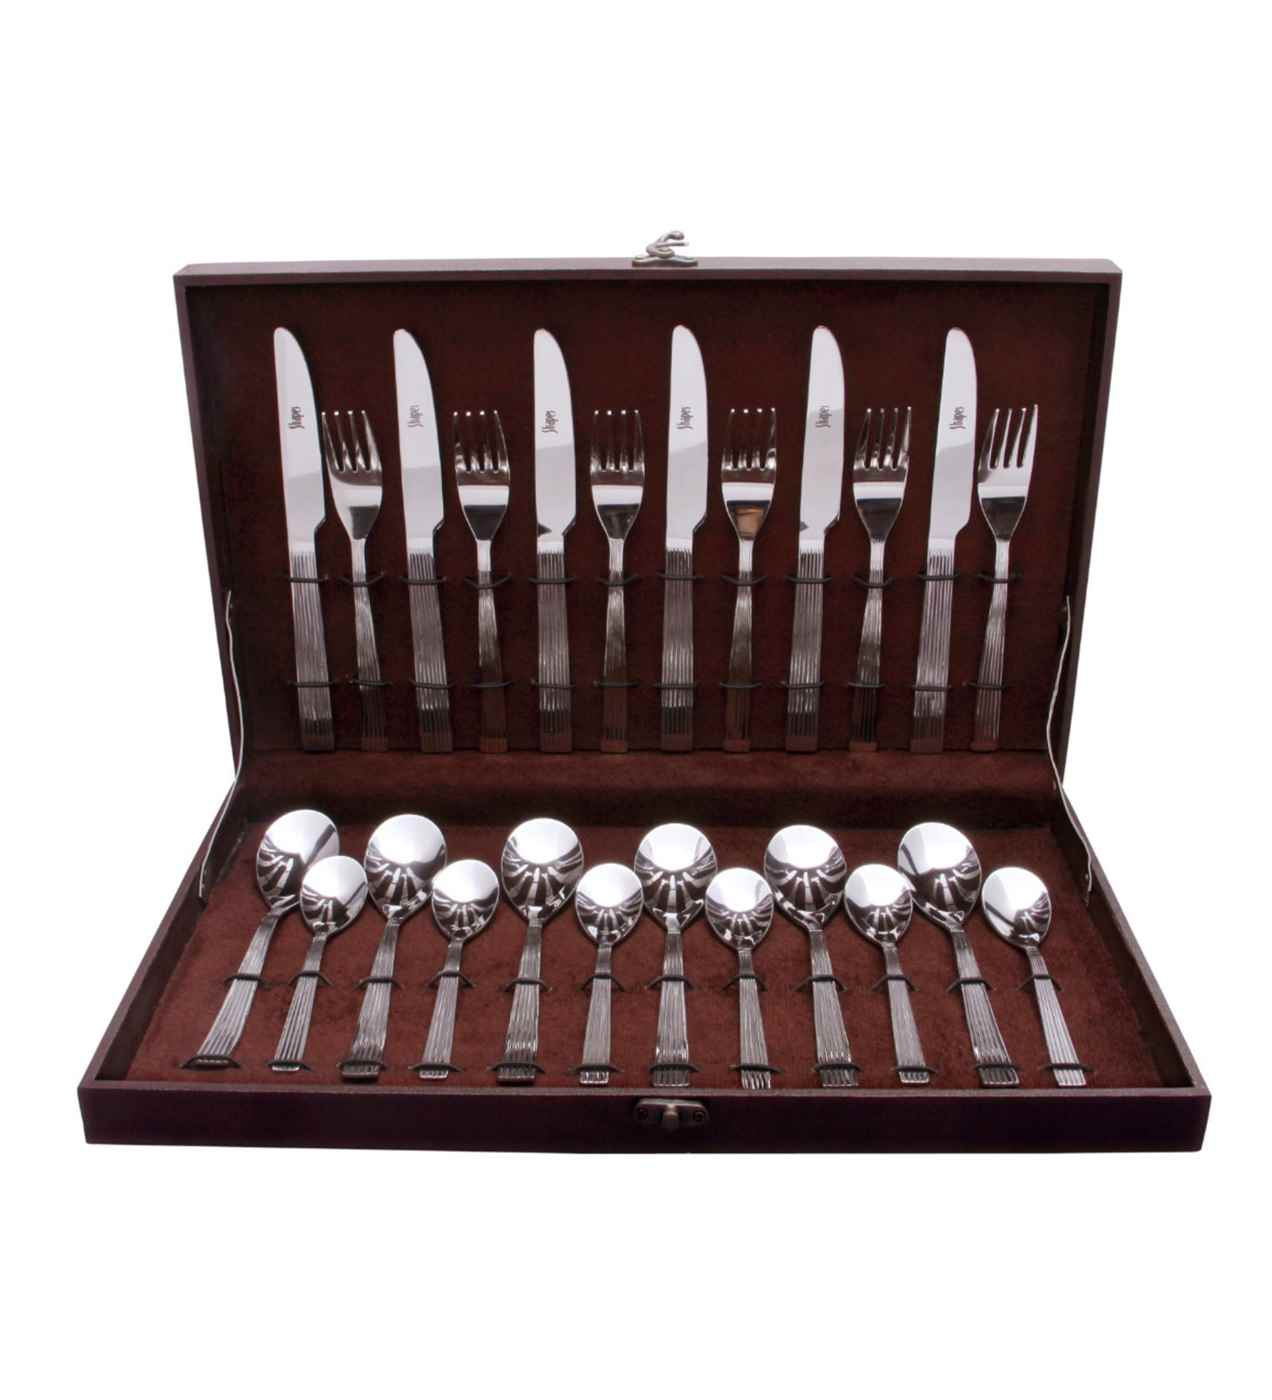 shapes-alpine-stainless-steel-cutlery-set---set-of-24-shapes-alpine-stainless-steel-cutlery-set---se-ff9wn2